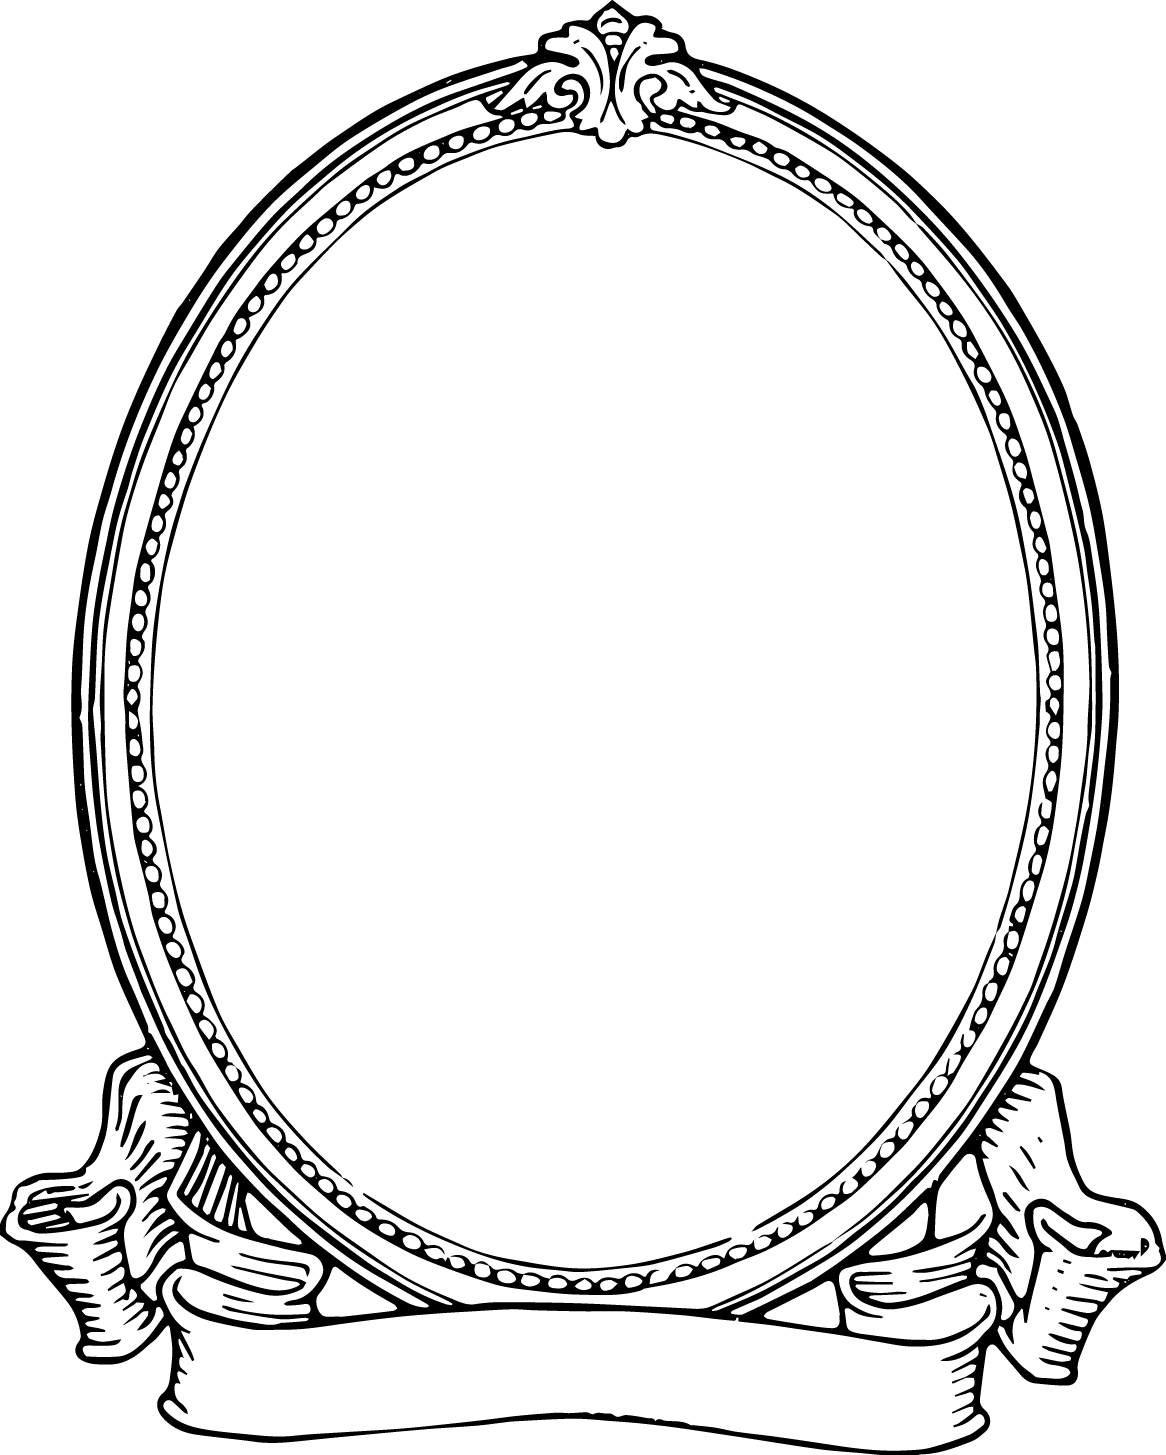 hight resolution of frame clipart black and white